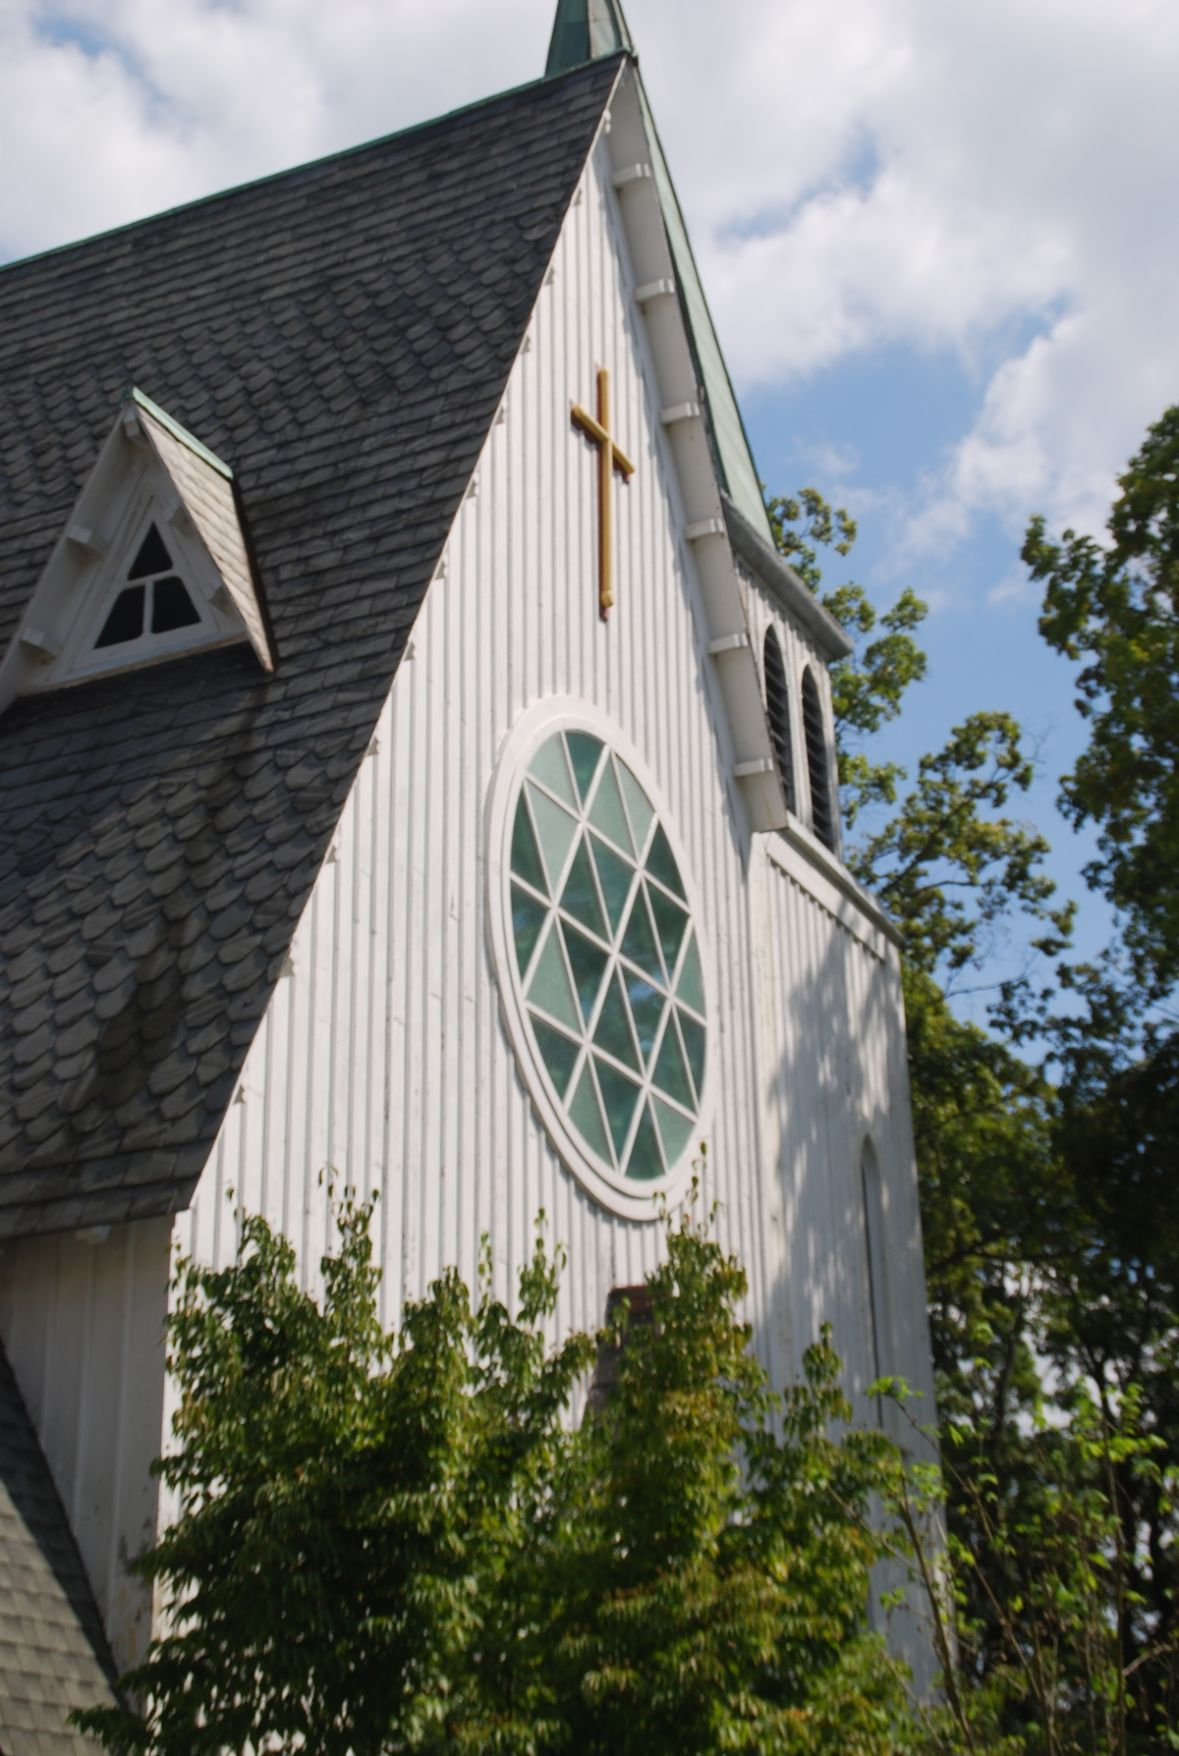 High Bridge Reformed Church on historic structure tour at Taylor-Wharton 275th anniversary